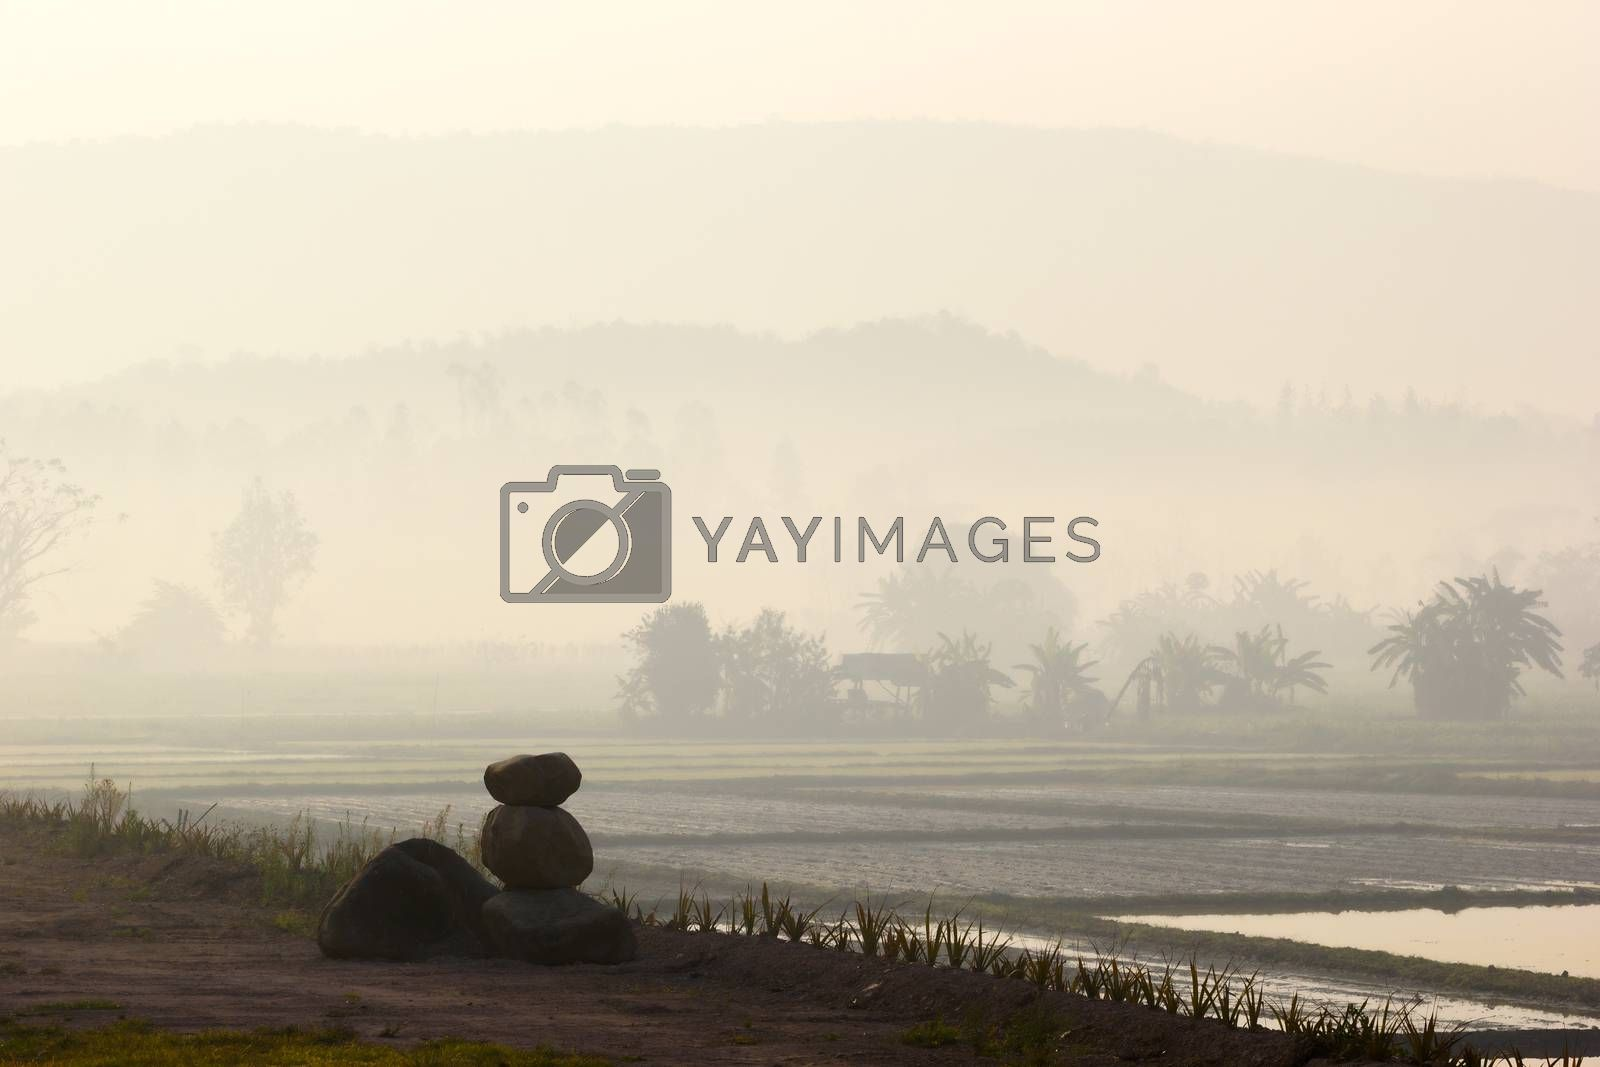 landscape of countryside in Thailand with mist in the early morning before sunrise with three rocks on the foreground. HDR.